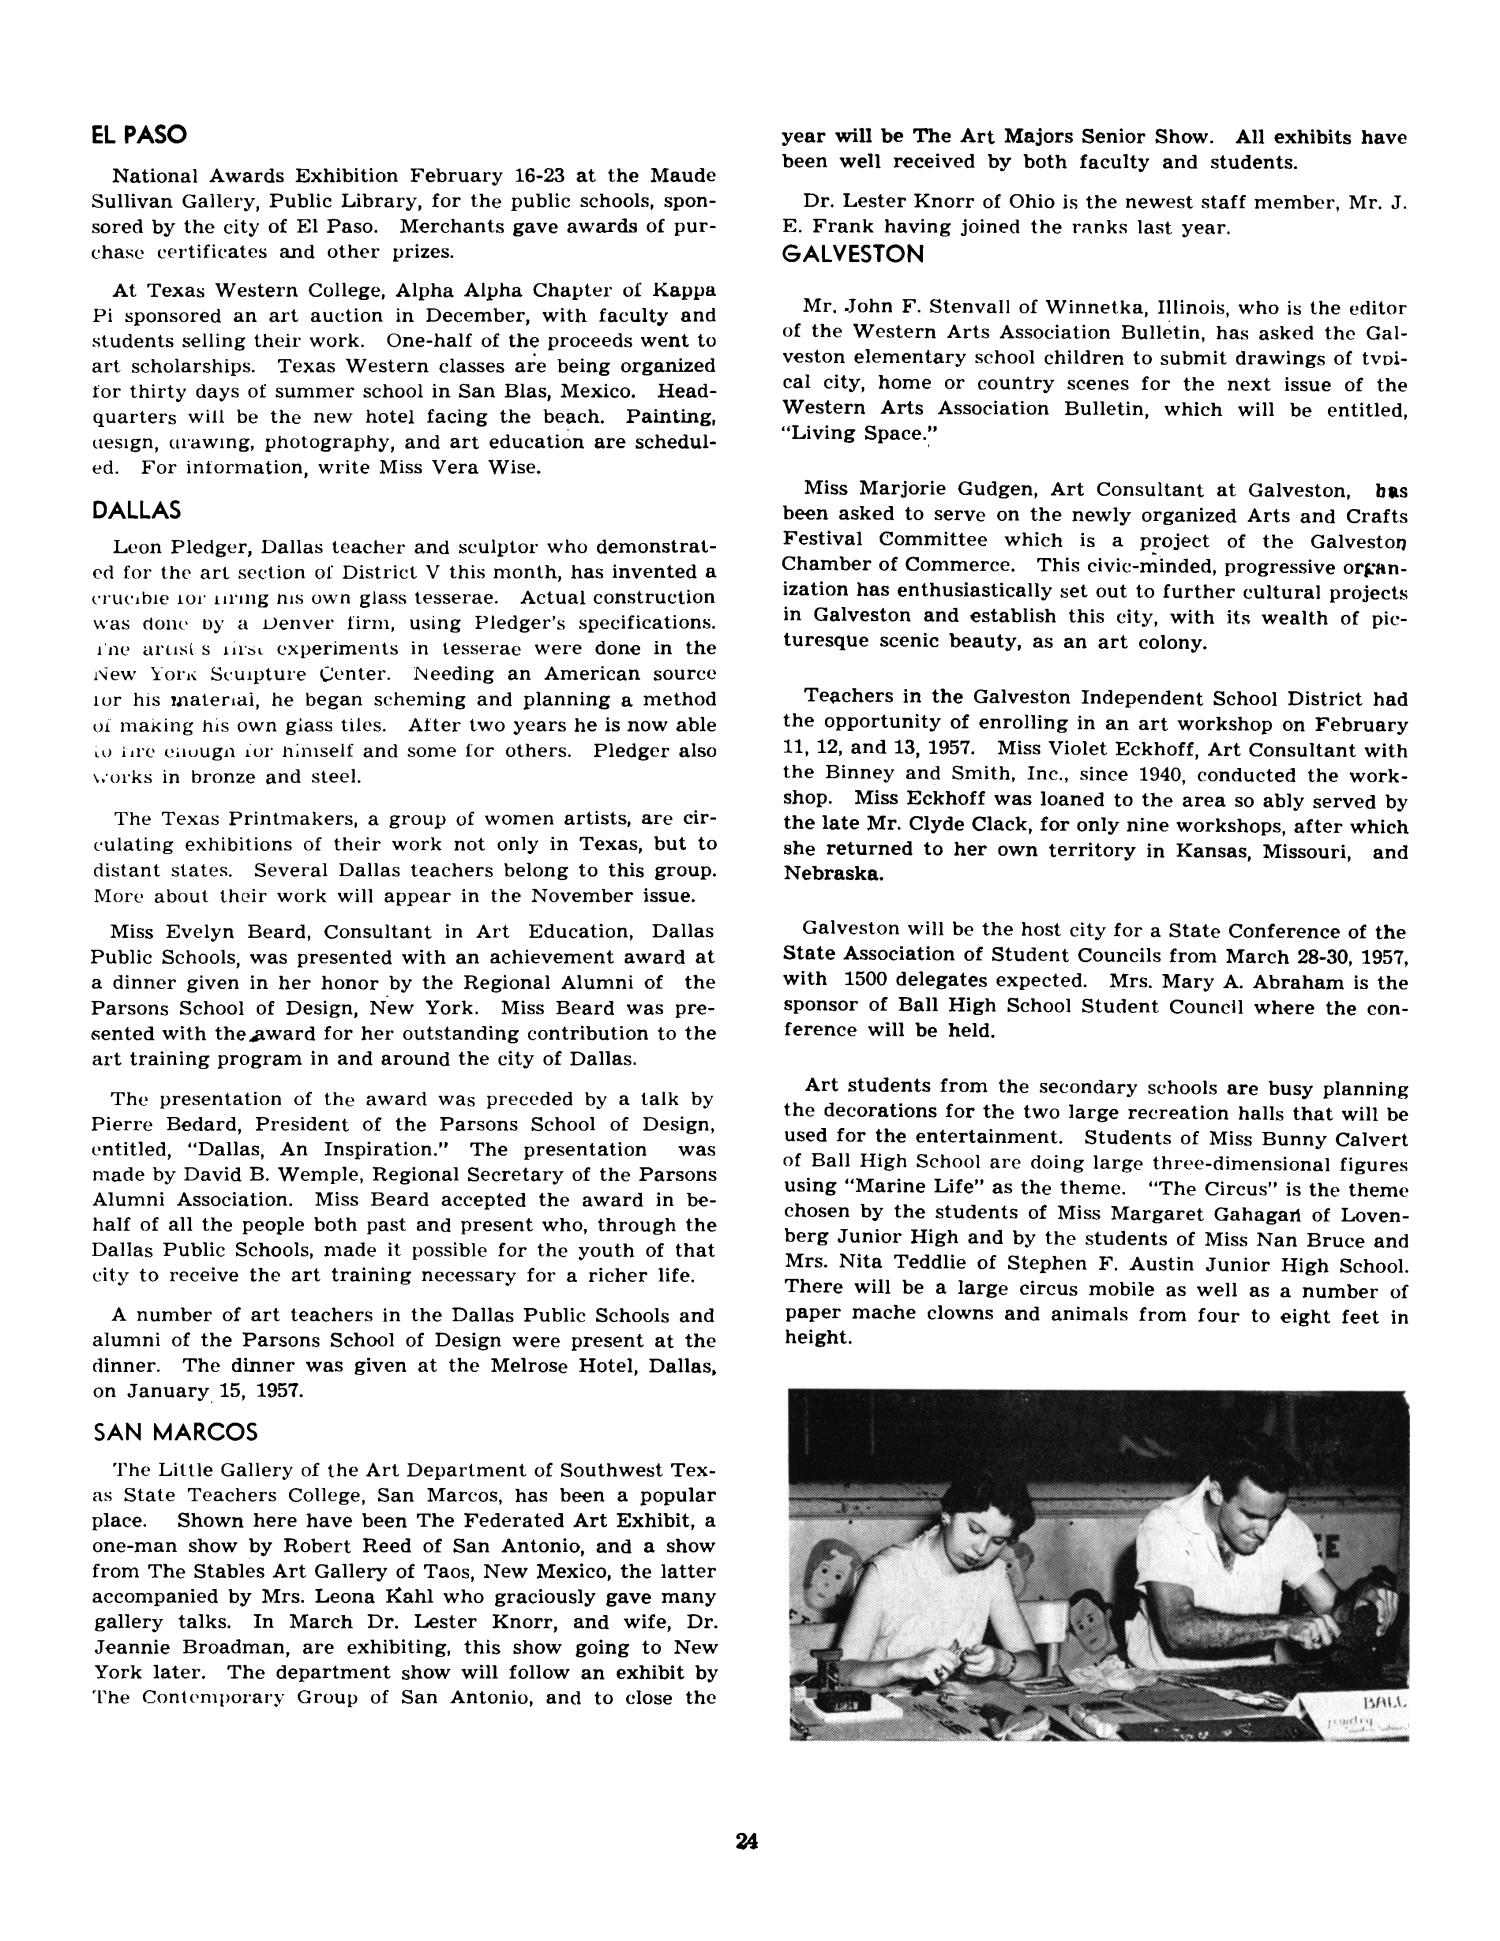 Western arts and crafts - Texas Trends In Art Education March 1957 Page 24